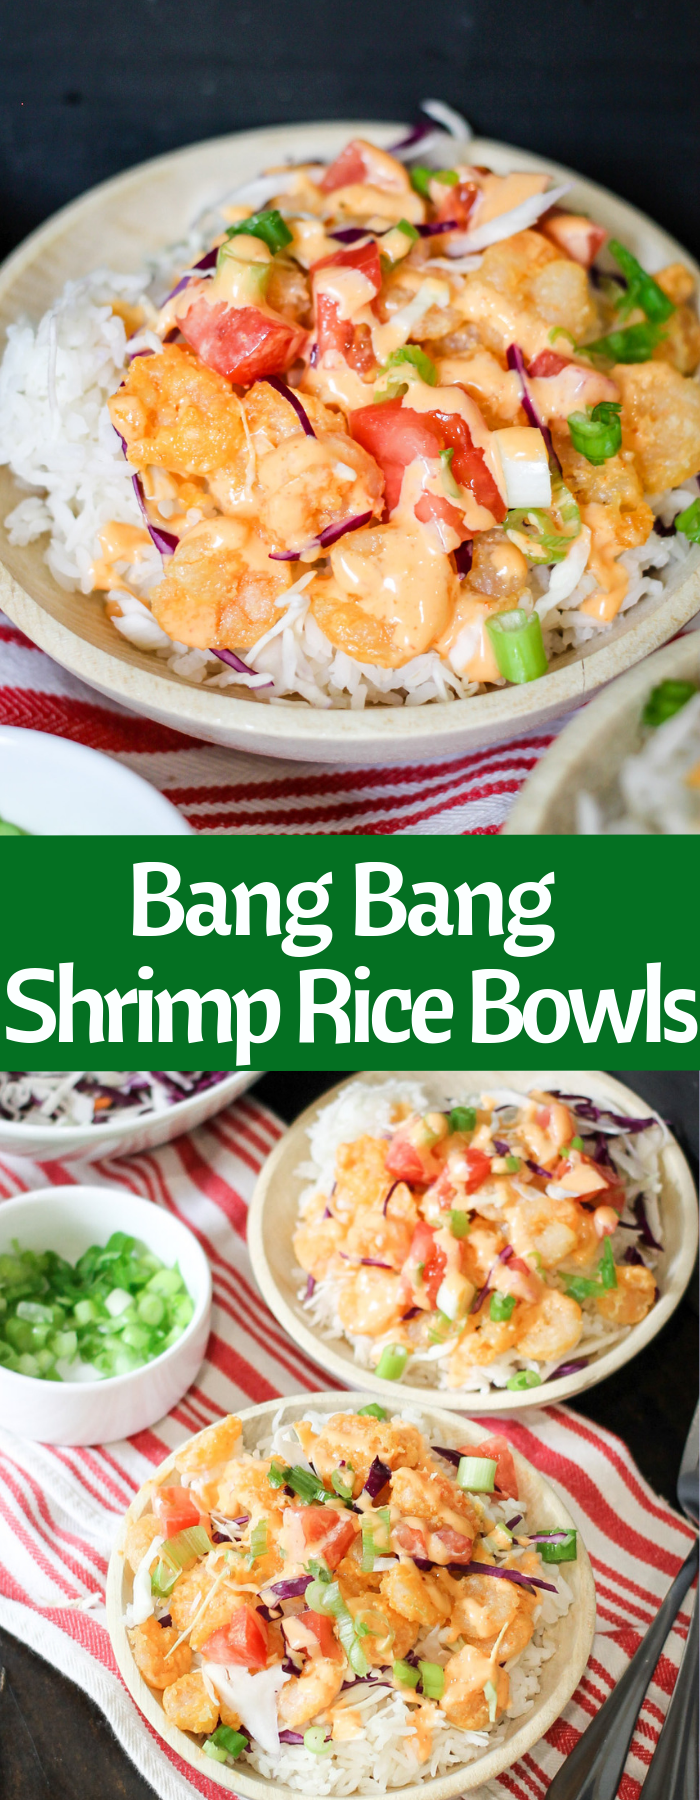 Bang Bang Shrimp Rice Bowls (copycat recipe)